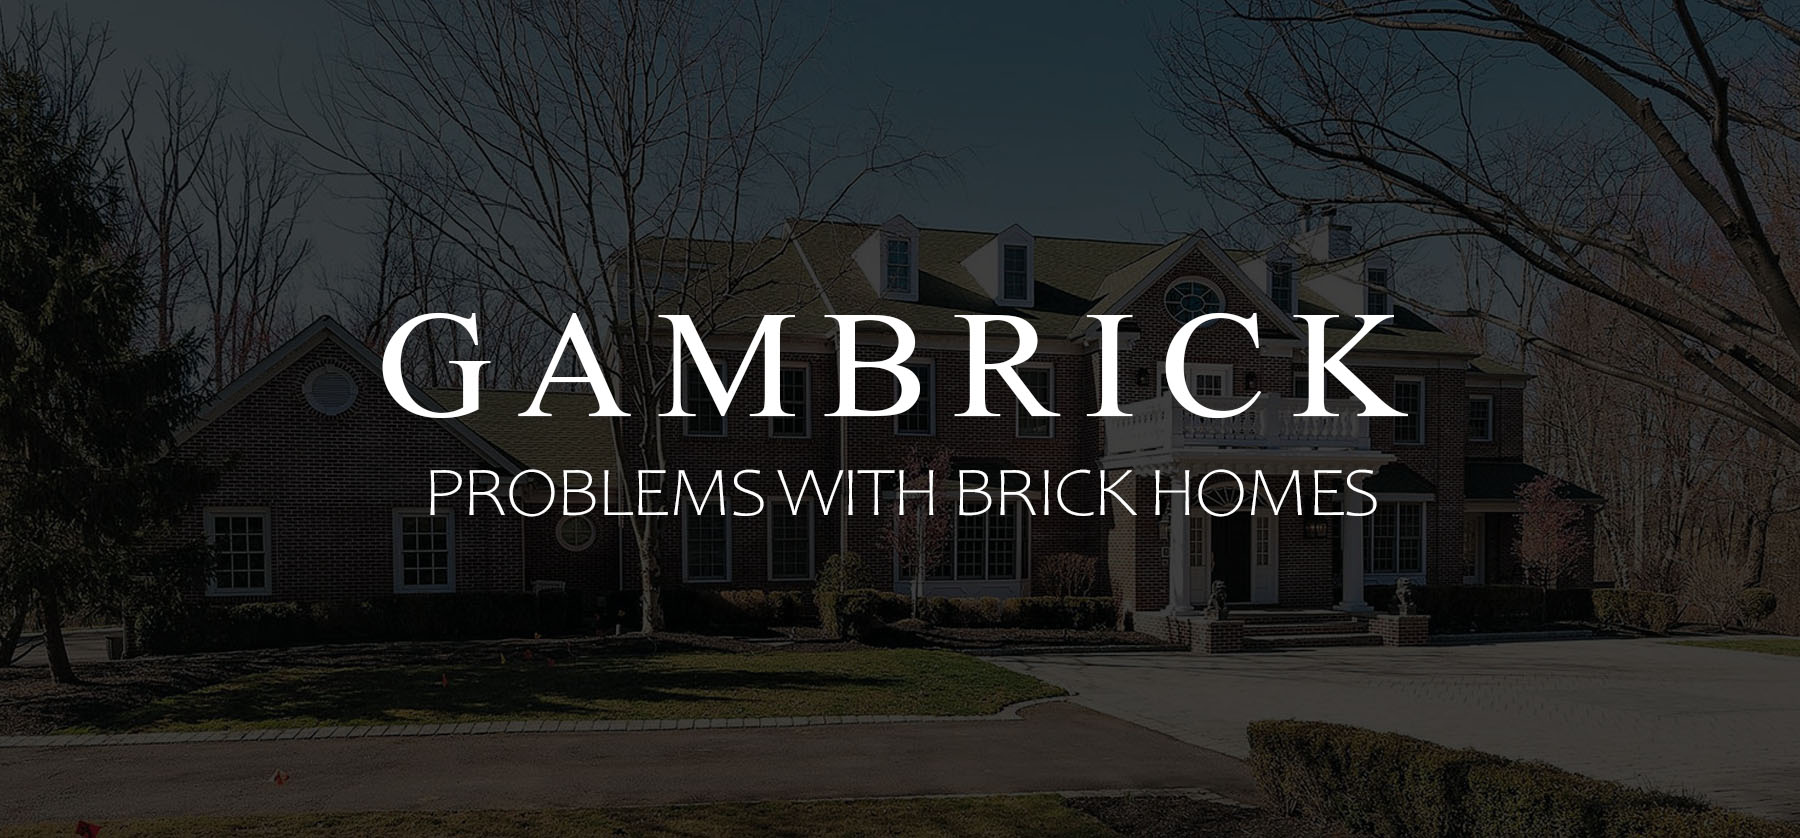 Problems with brick homes banner 1